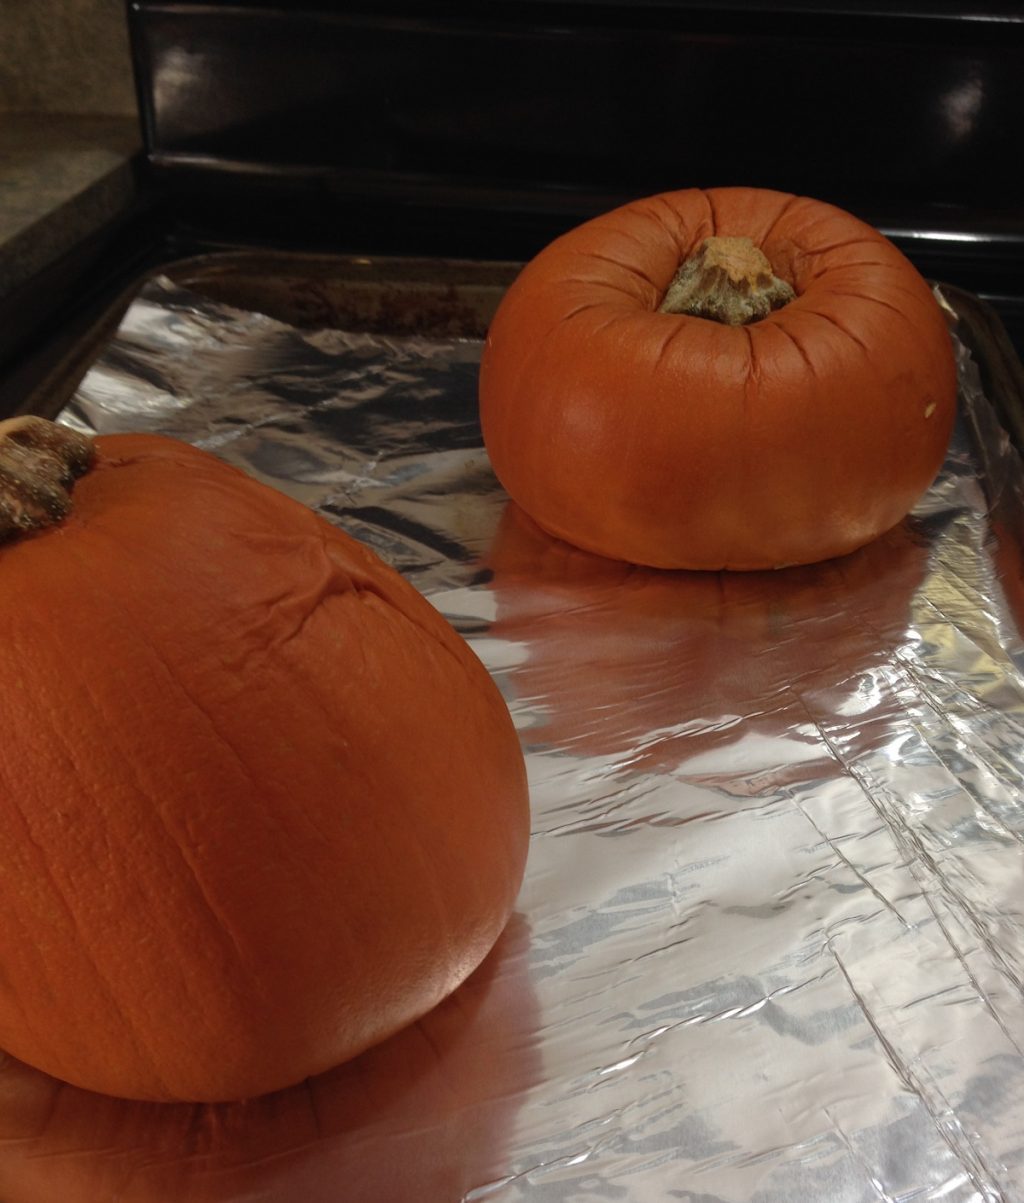 baked pumpkin sits on the stove